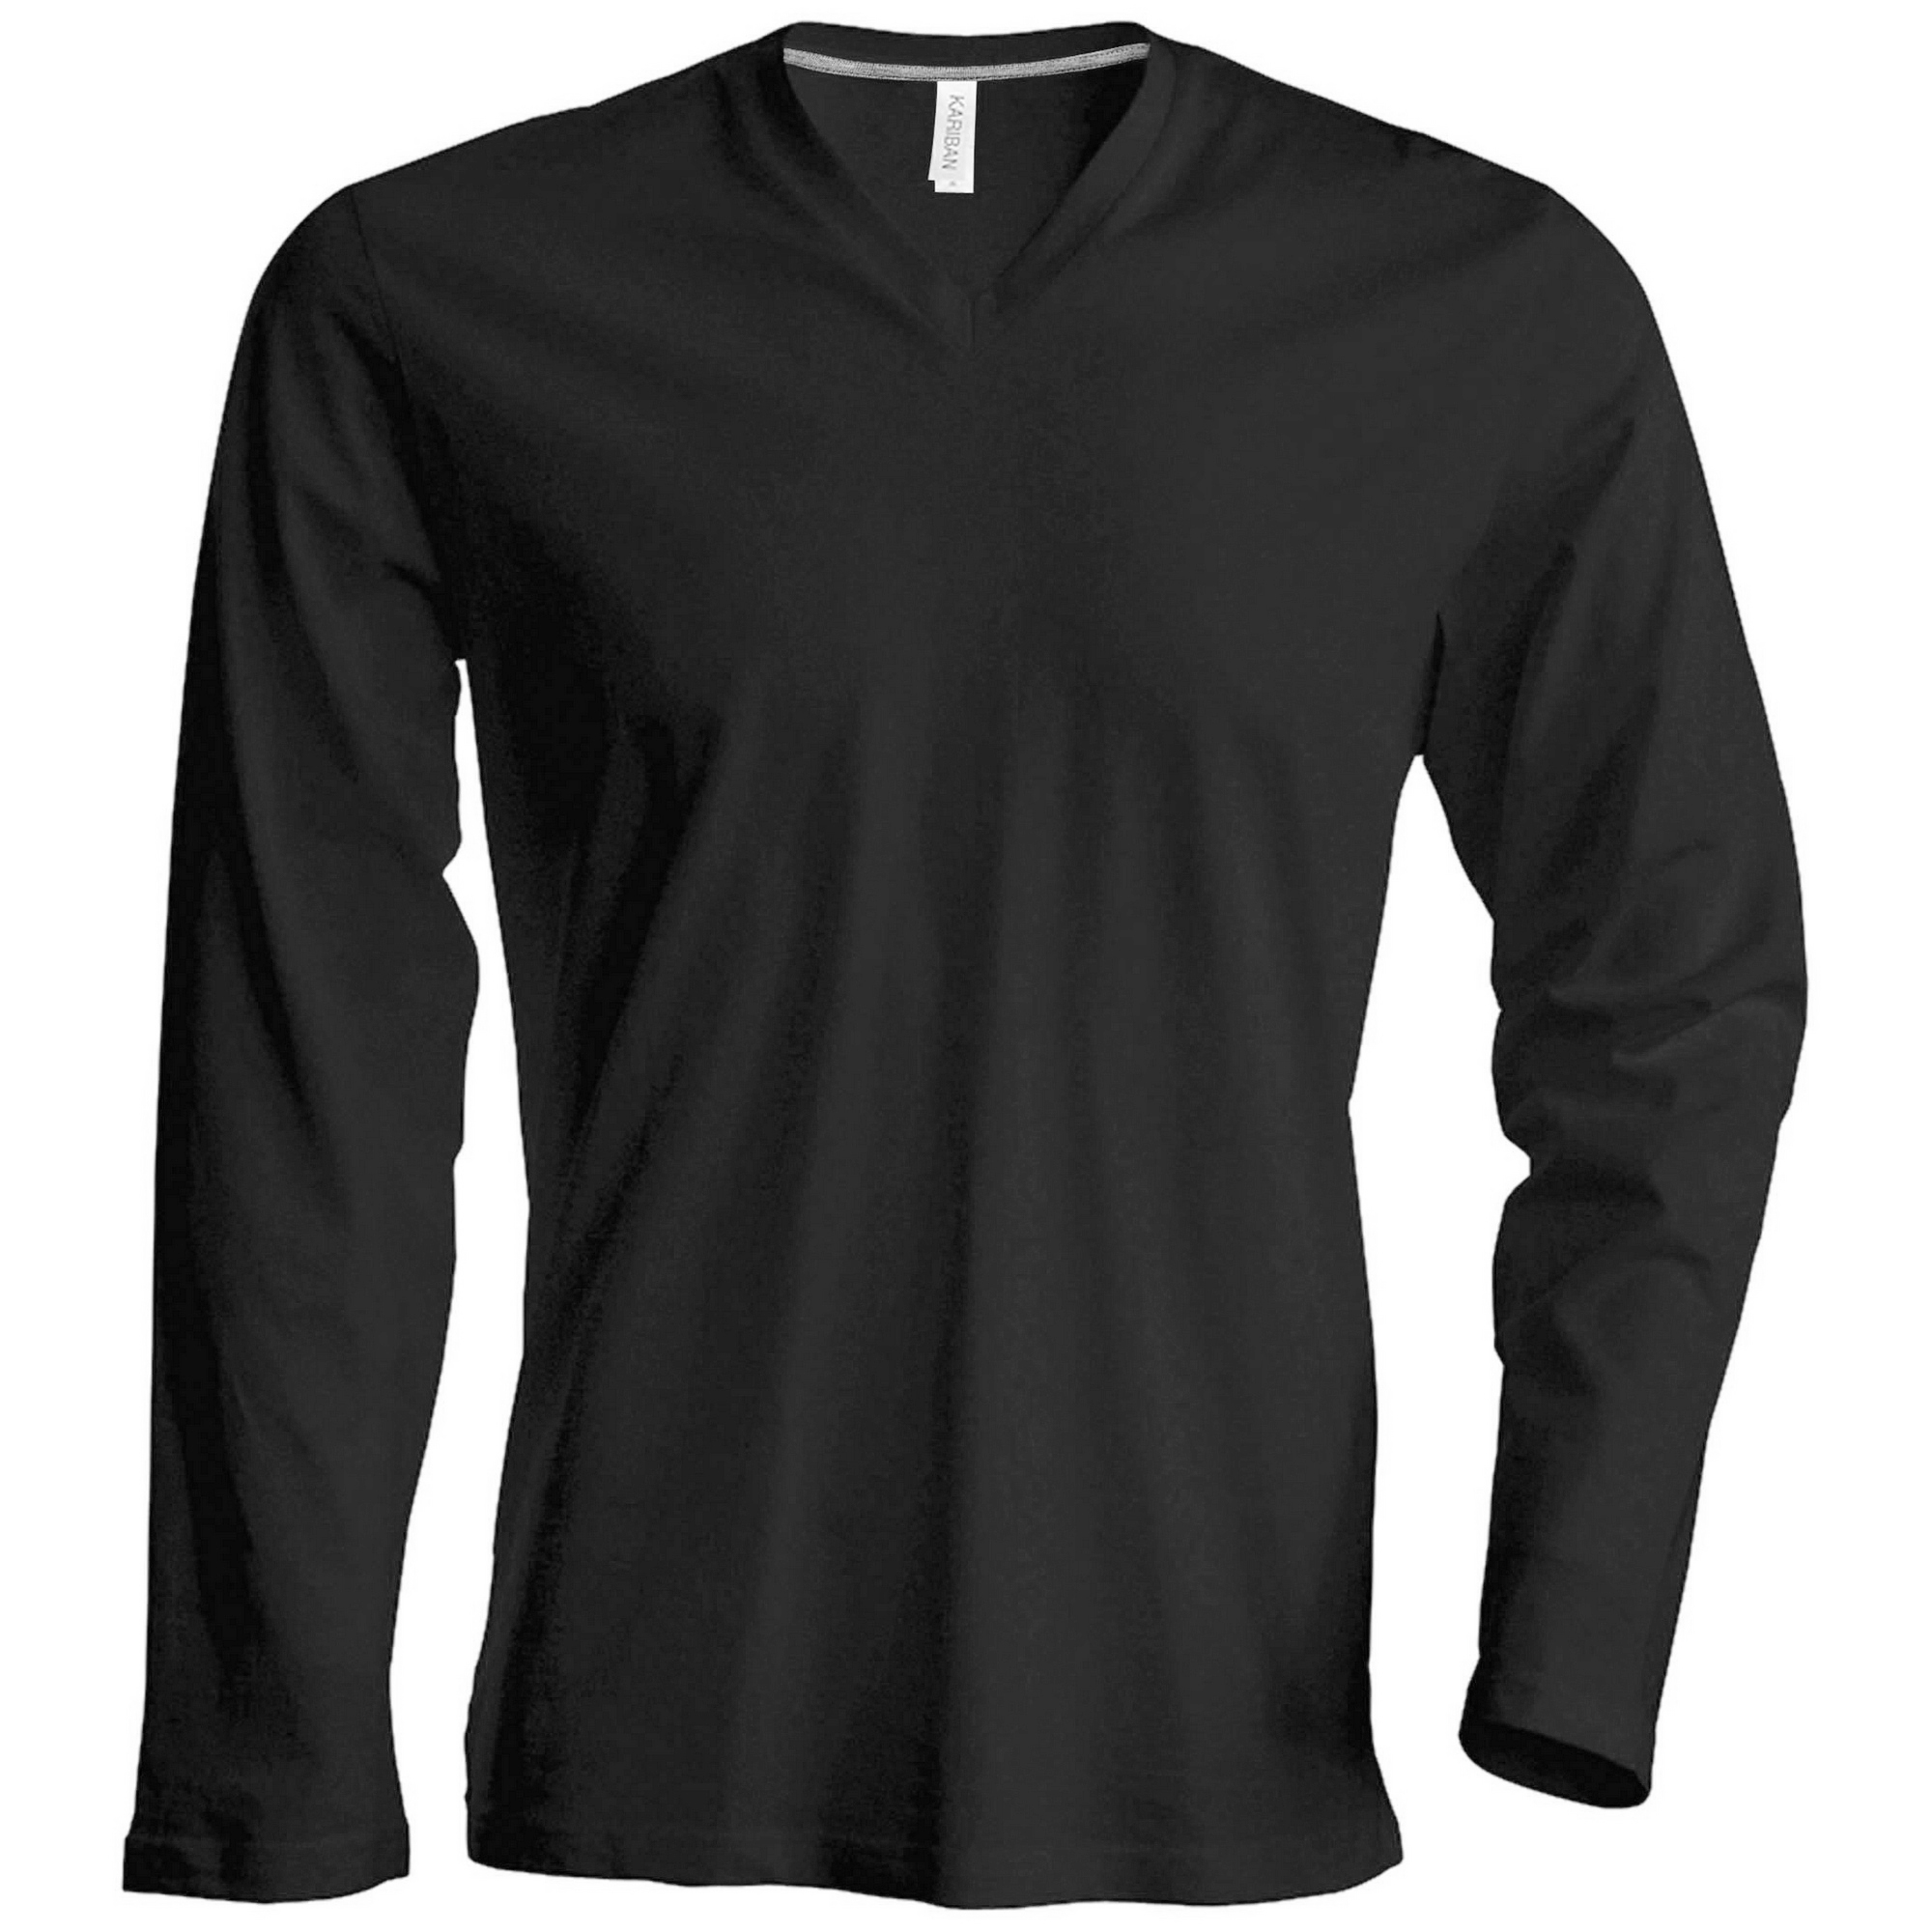 Kariban mens slim fit long sleeve v neck t shirt ebay for Mens slim fit long sleeve t shirts